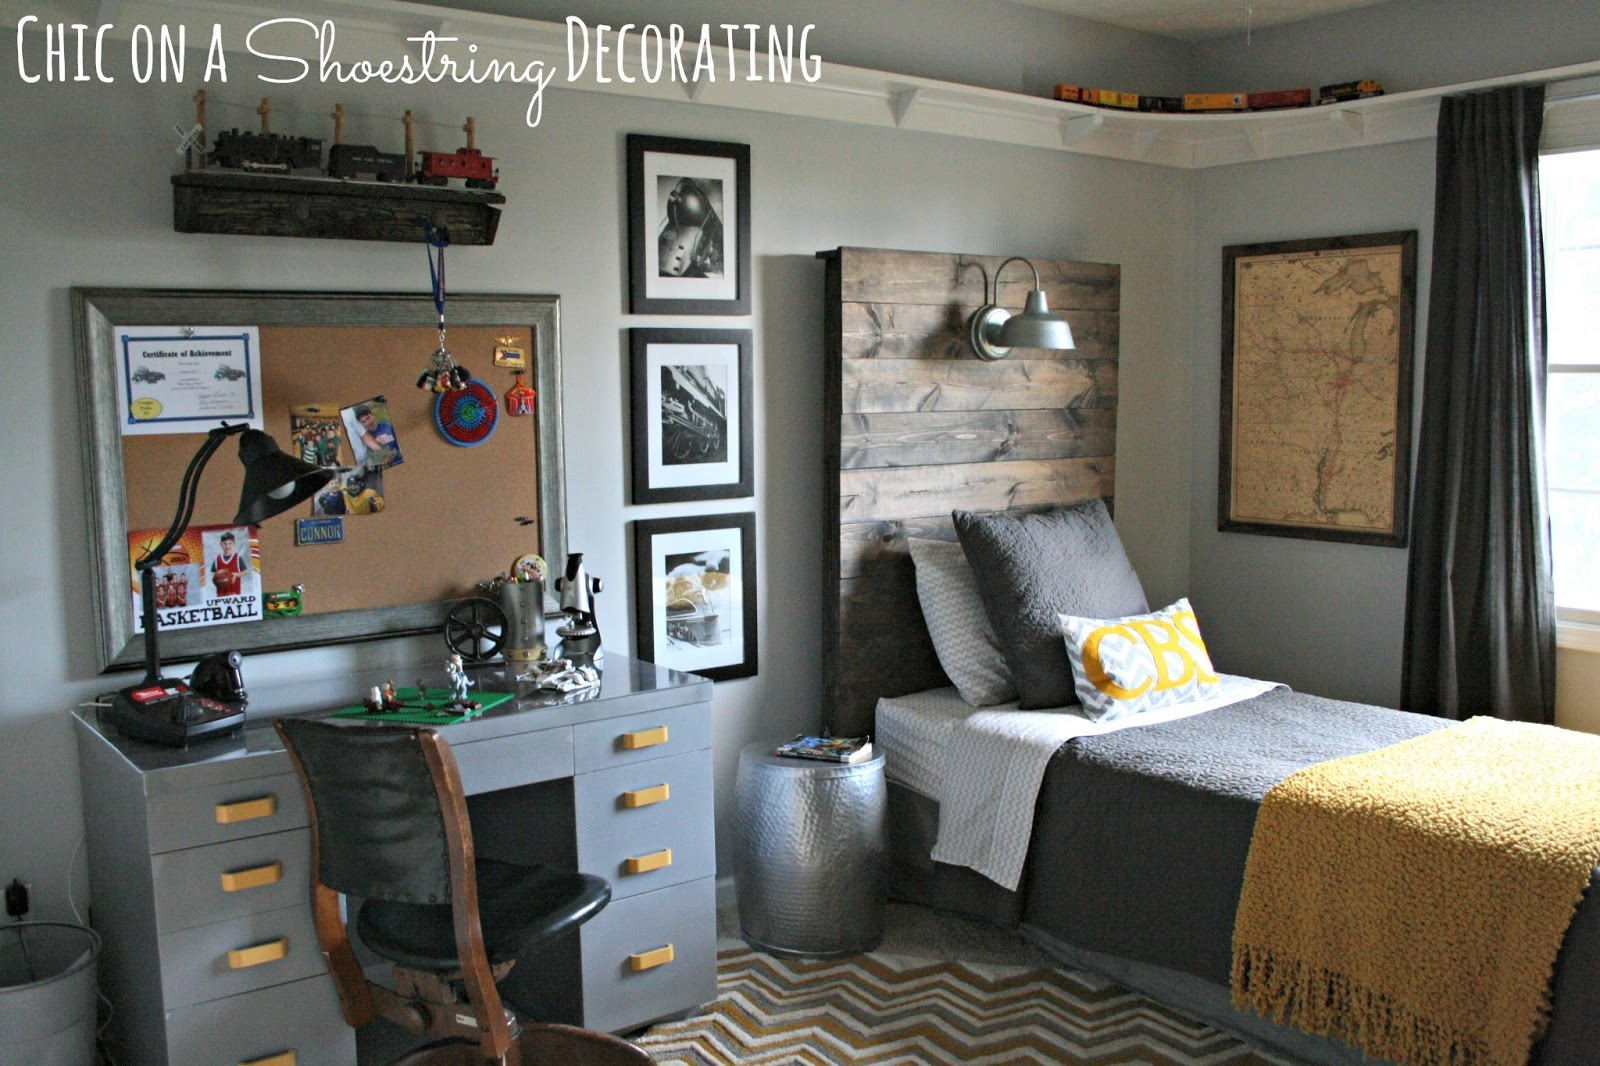 Best Chic On A Shoestring Decorating Bigger Boy Room Reveal This Month